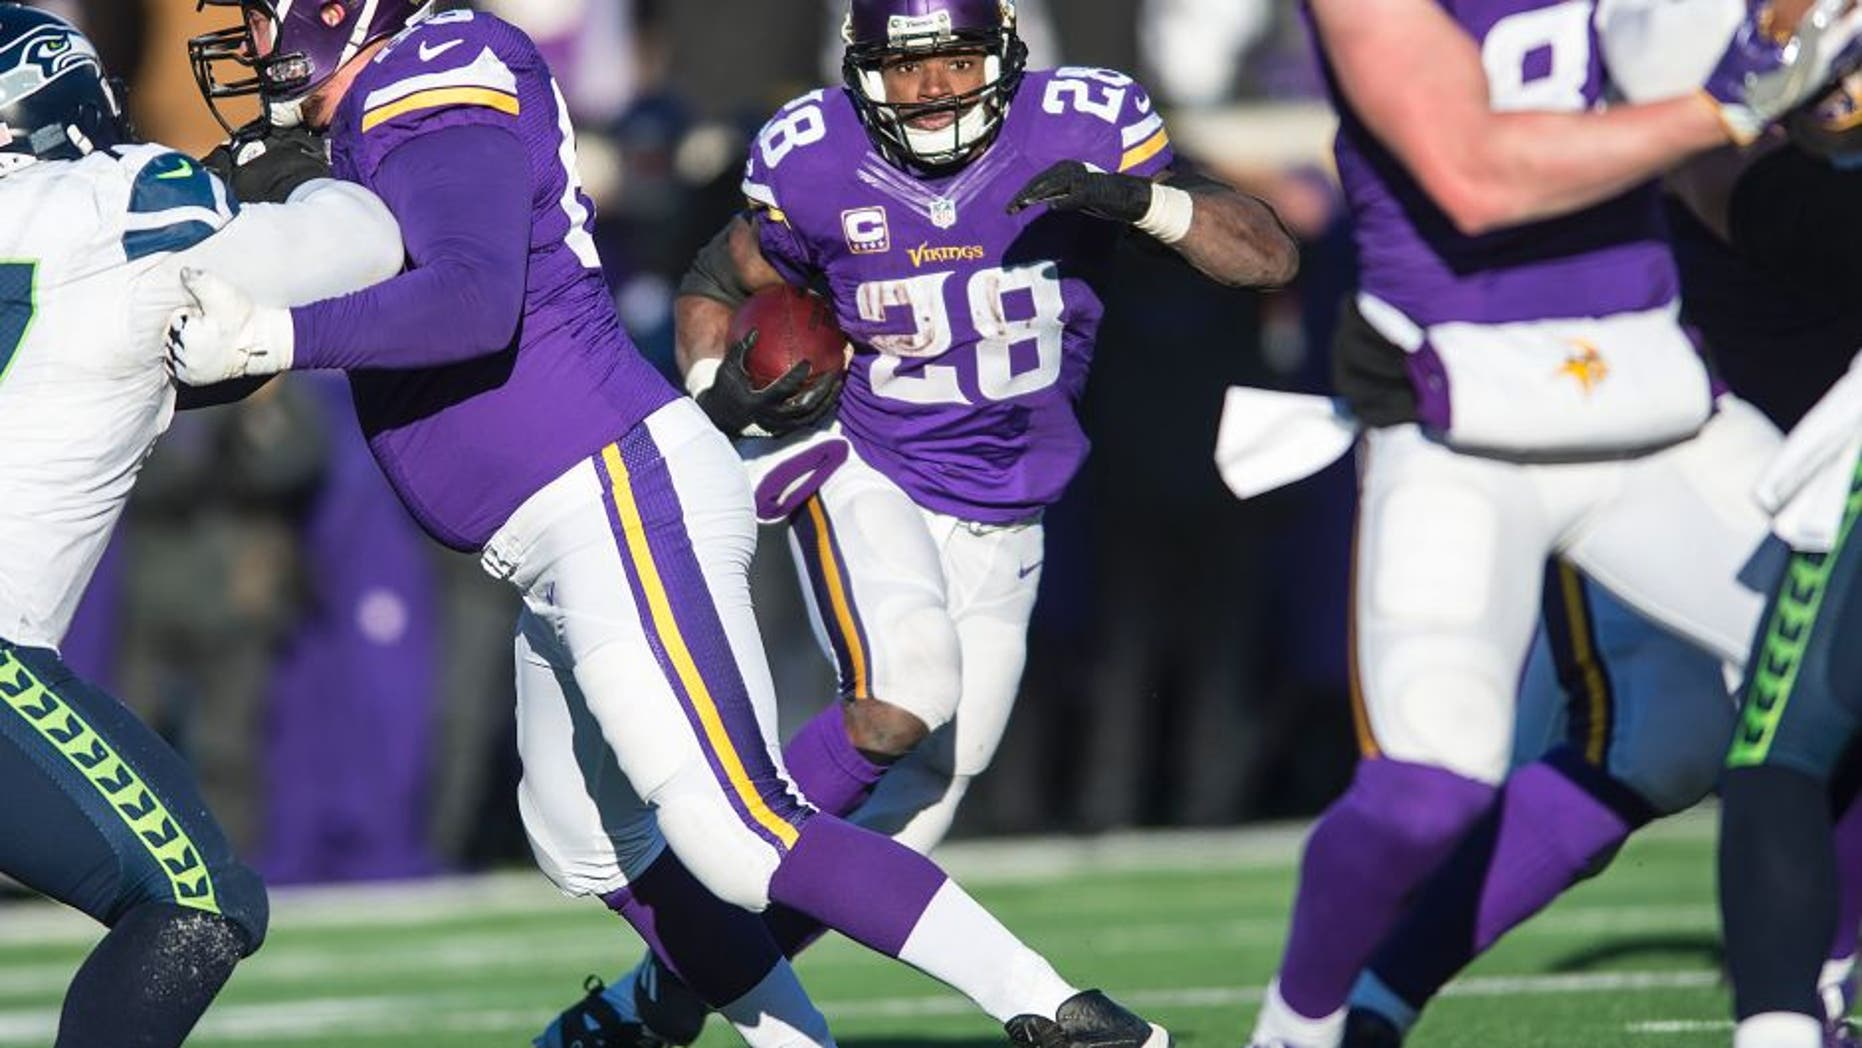 MINNEAPOLIS, MN - JANUARY 10: Adrian Peterson #28 of the Minnesota Vikings carries the ball during an NFL game against the Seattle Seahawks at TCF Bank Stadium January 10, 2016 in Minneapolis, Minnesota. (Photo by Tom Dahlin/Getty Images)